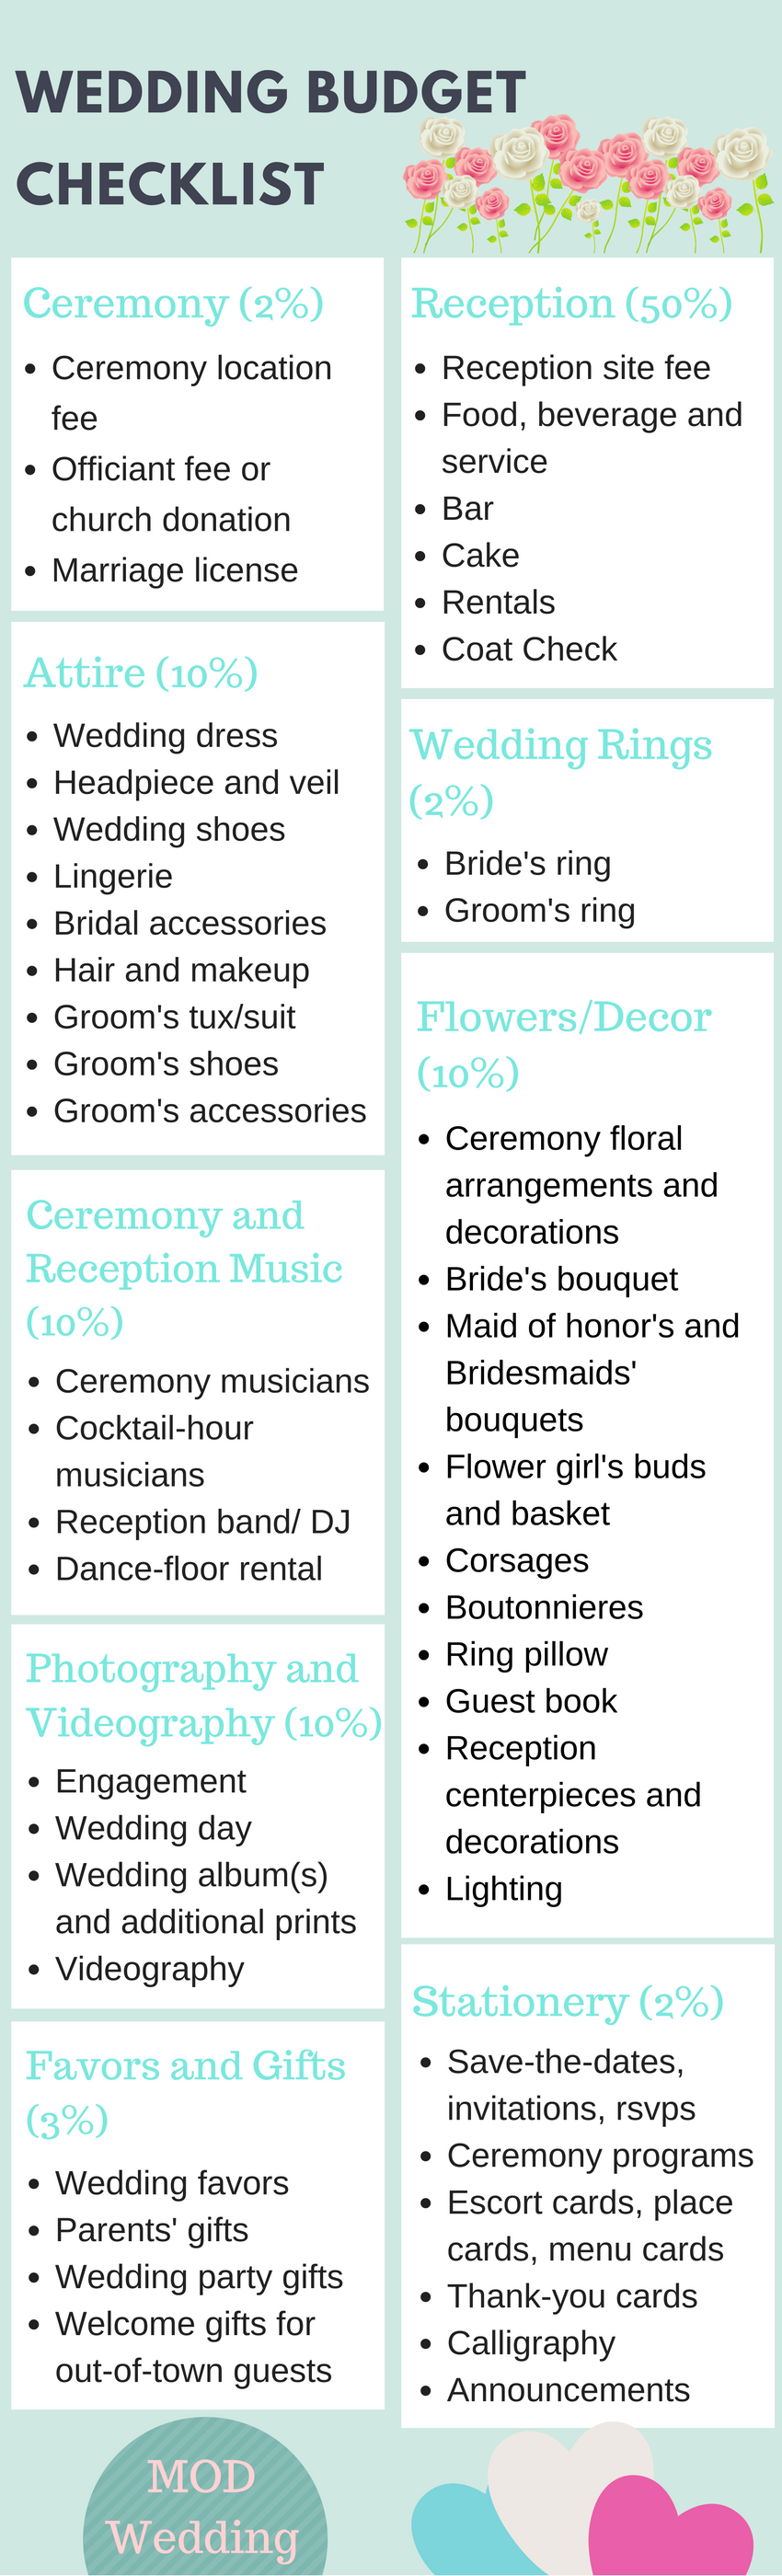 wedding budget checklist in 2018 weddings pinterest